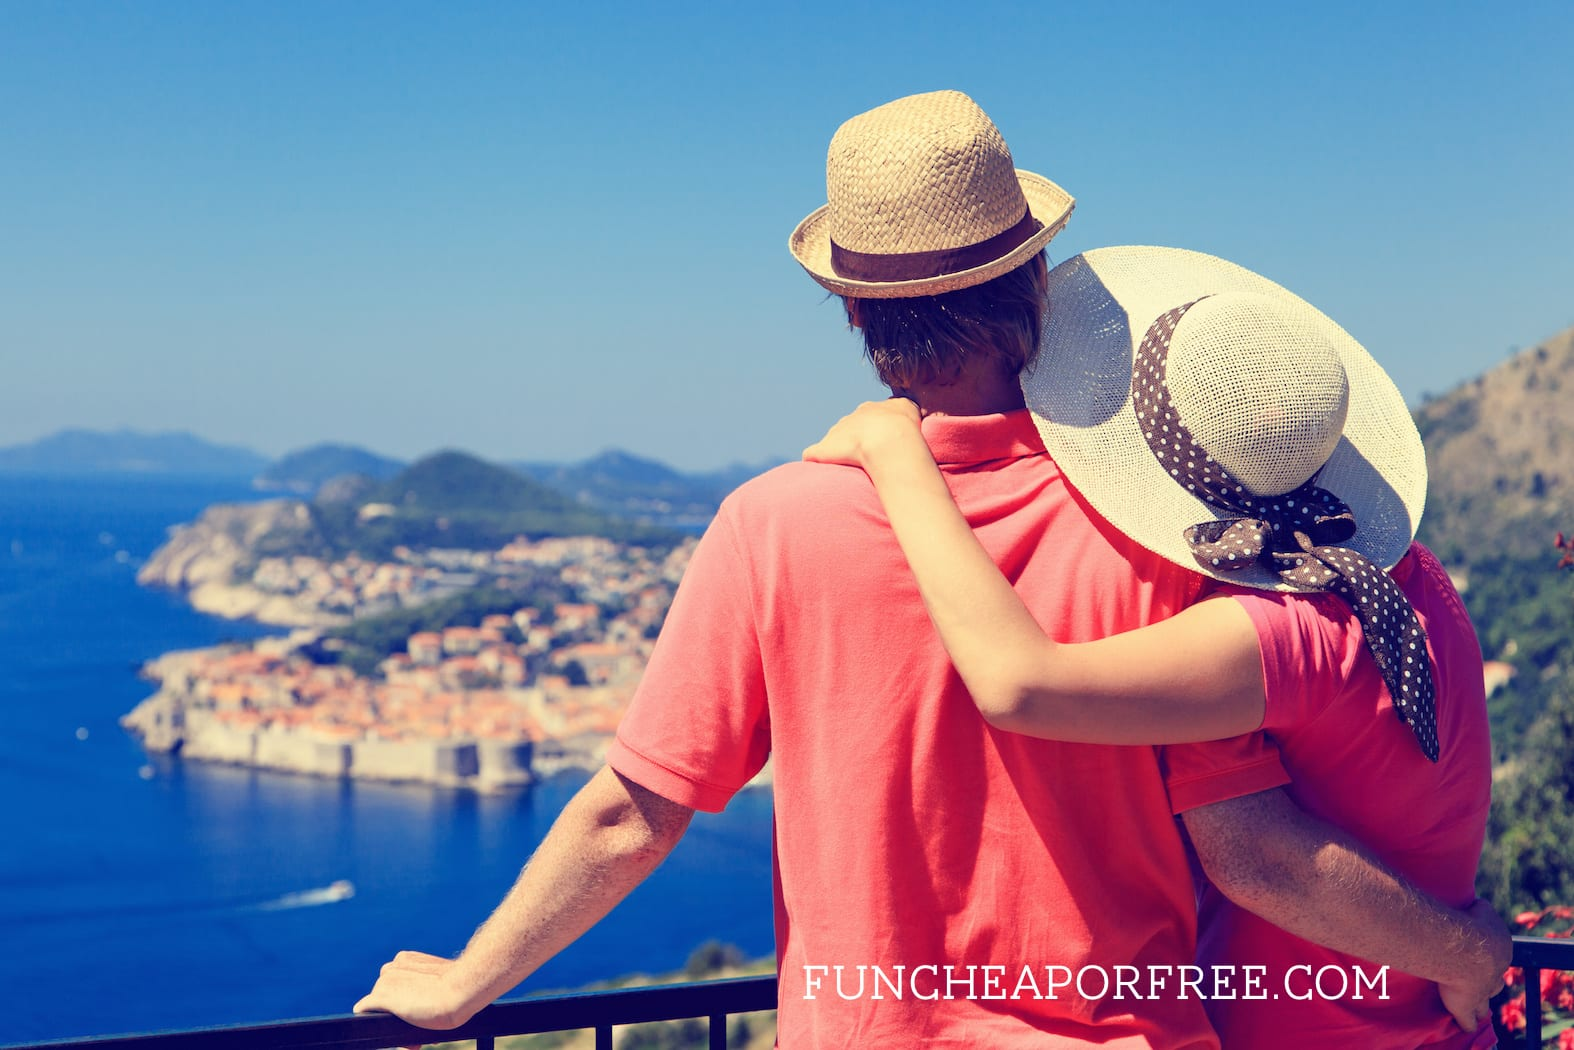 How to get your spouse to stop spending money 7 tips you for Best couples vacations on a budget